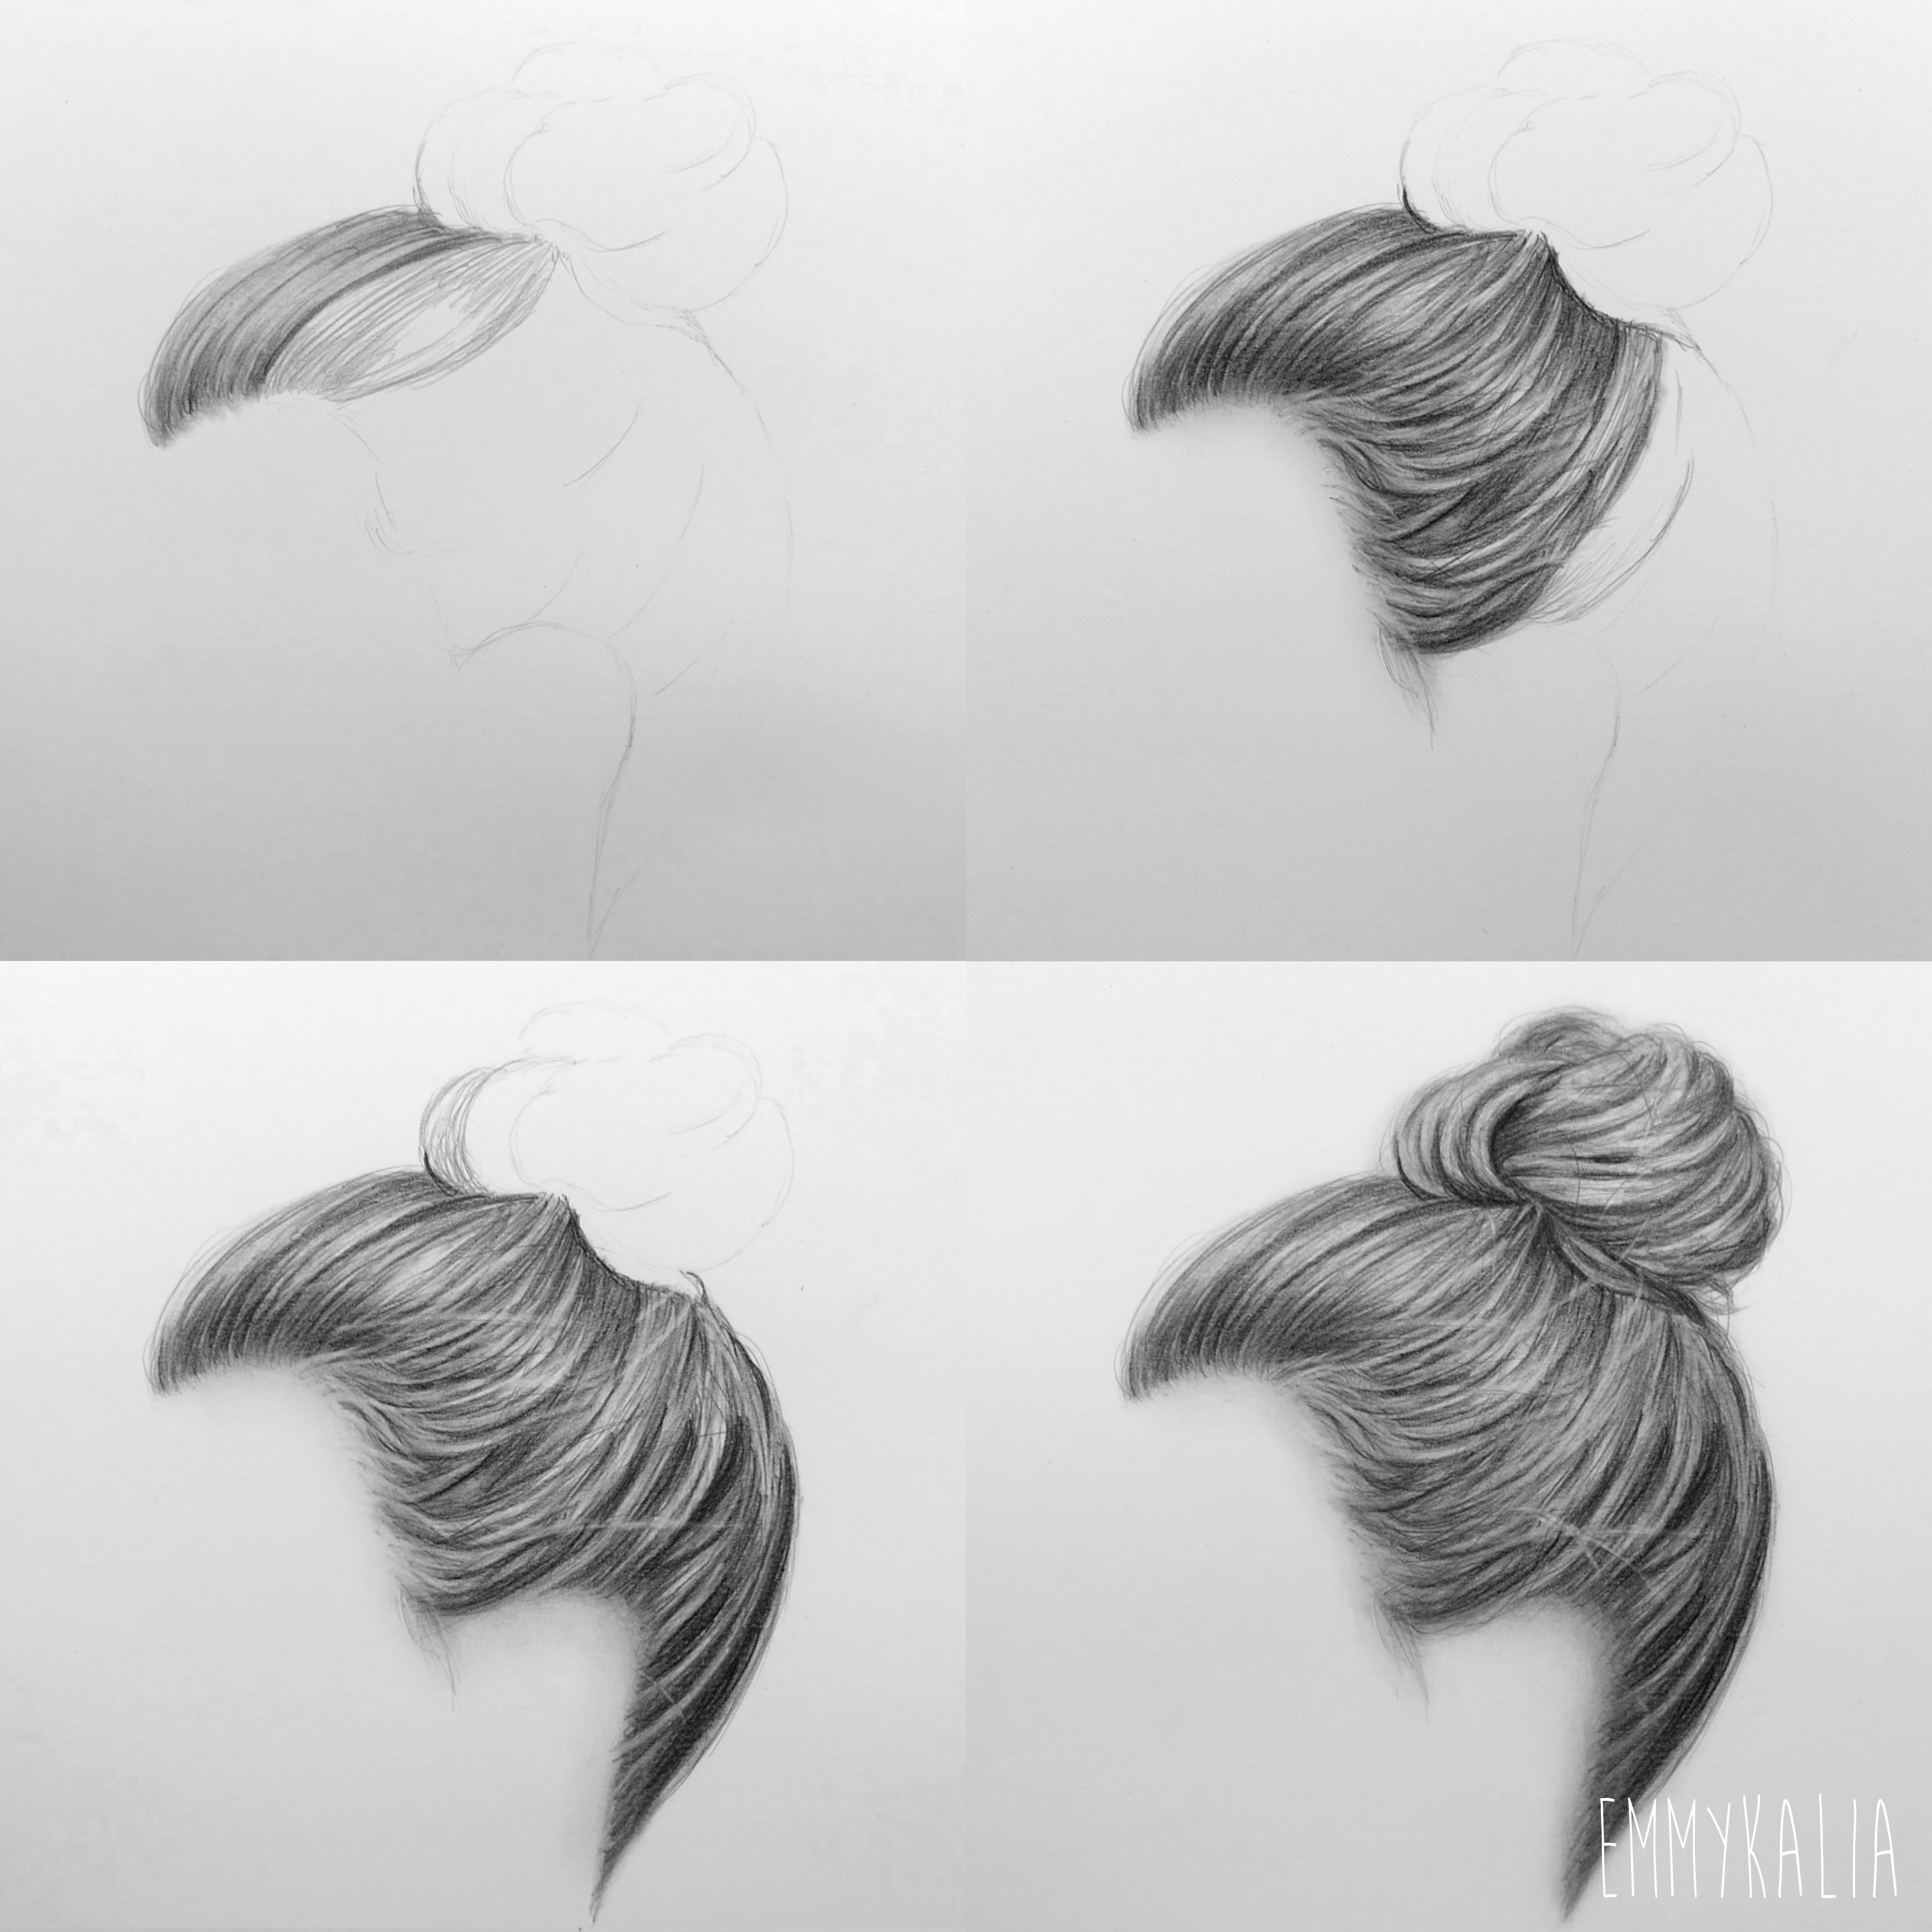 Video How To Draw A Realistic Hair Bun Step By Step Https Www Youtube Com Watch V Qrj5phxy3xo Realistic Hair Drawing How To Draw Hair Realistic Drawings